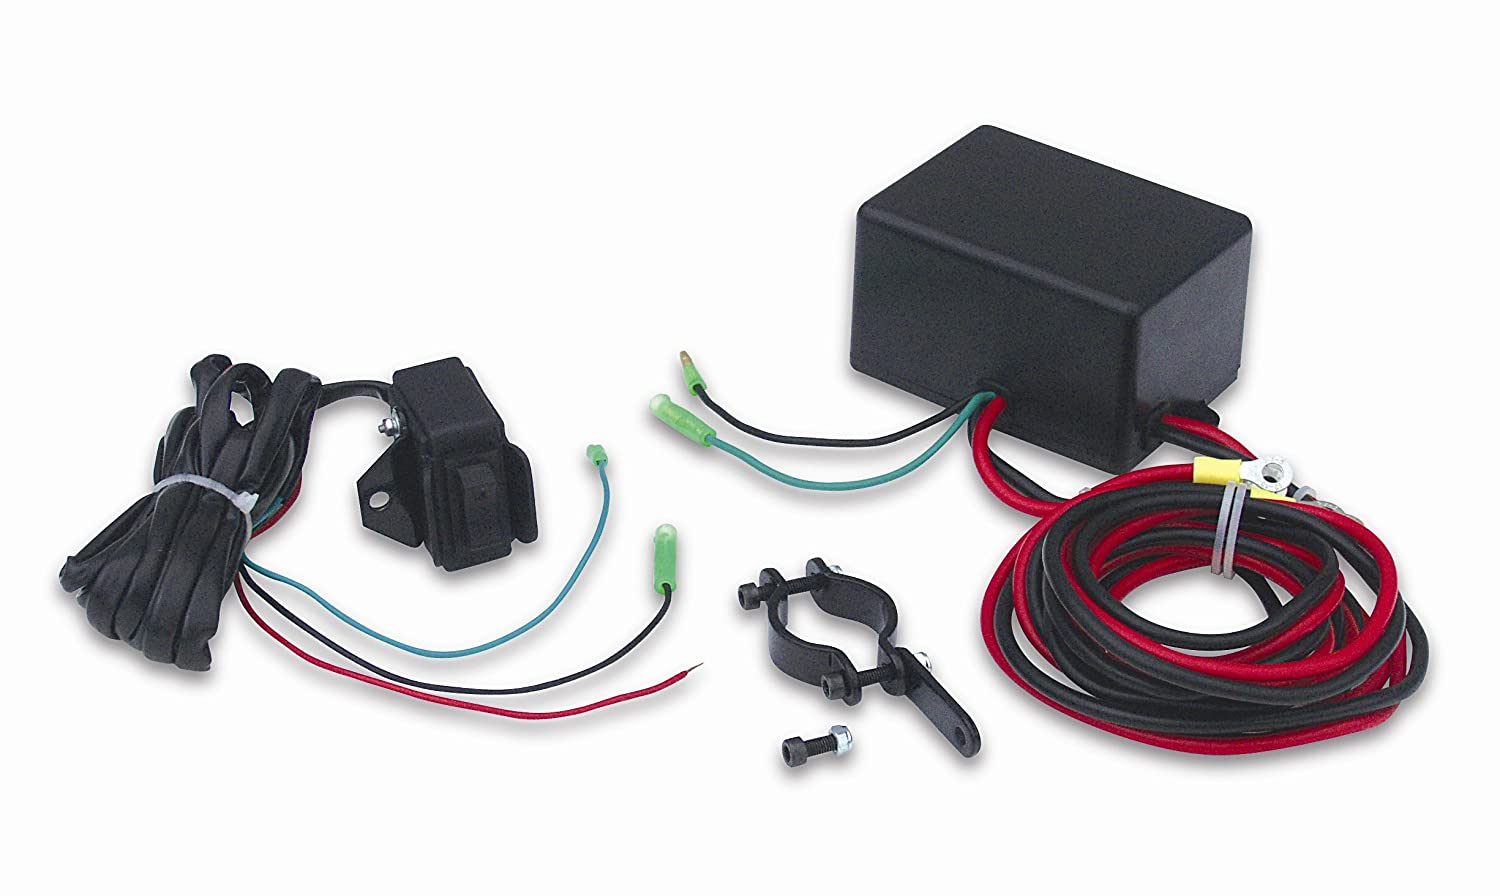 81DdN6yVfdL._SL1500_ amazon com superwinch 2320200 kit atv switch upgrade kit for wiring diagram for superwinch atv 2000 at gsmx.co